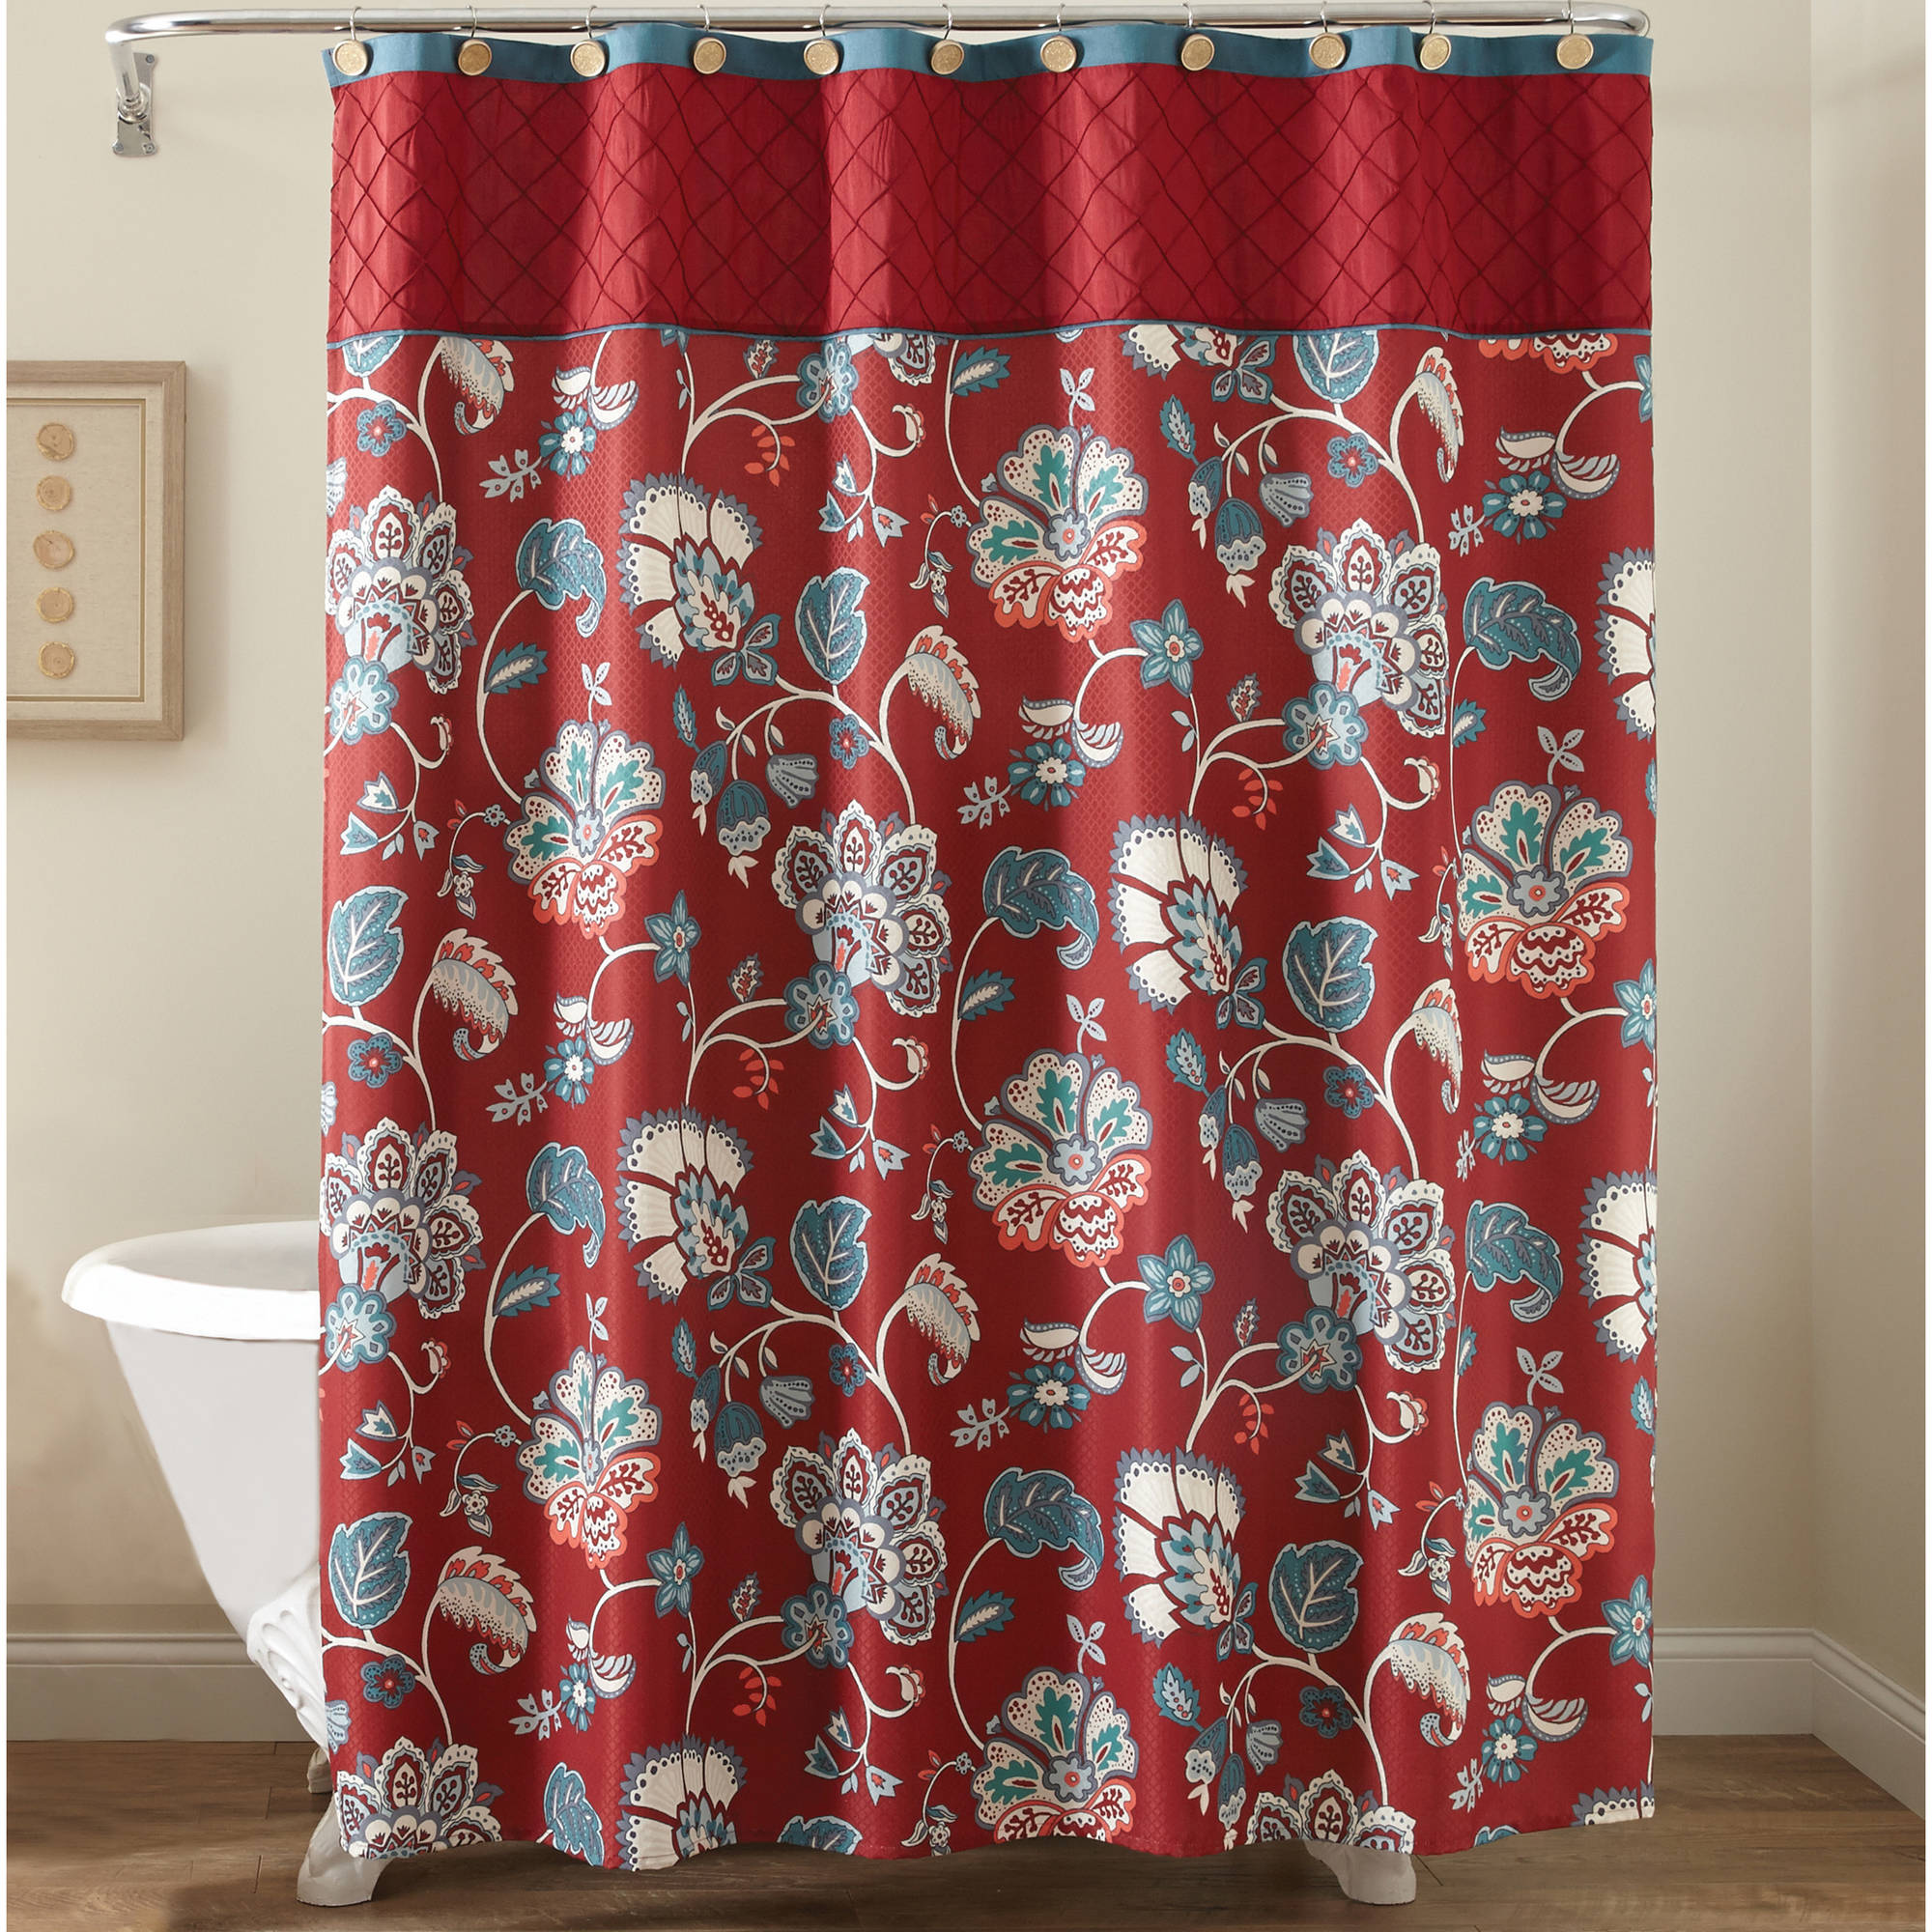 maroon shower curtain set. Better Homes and Gardens Red Jacobean Fabric Shower Curtain Curtains  Walmart com